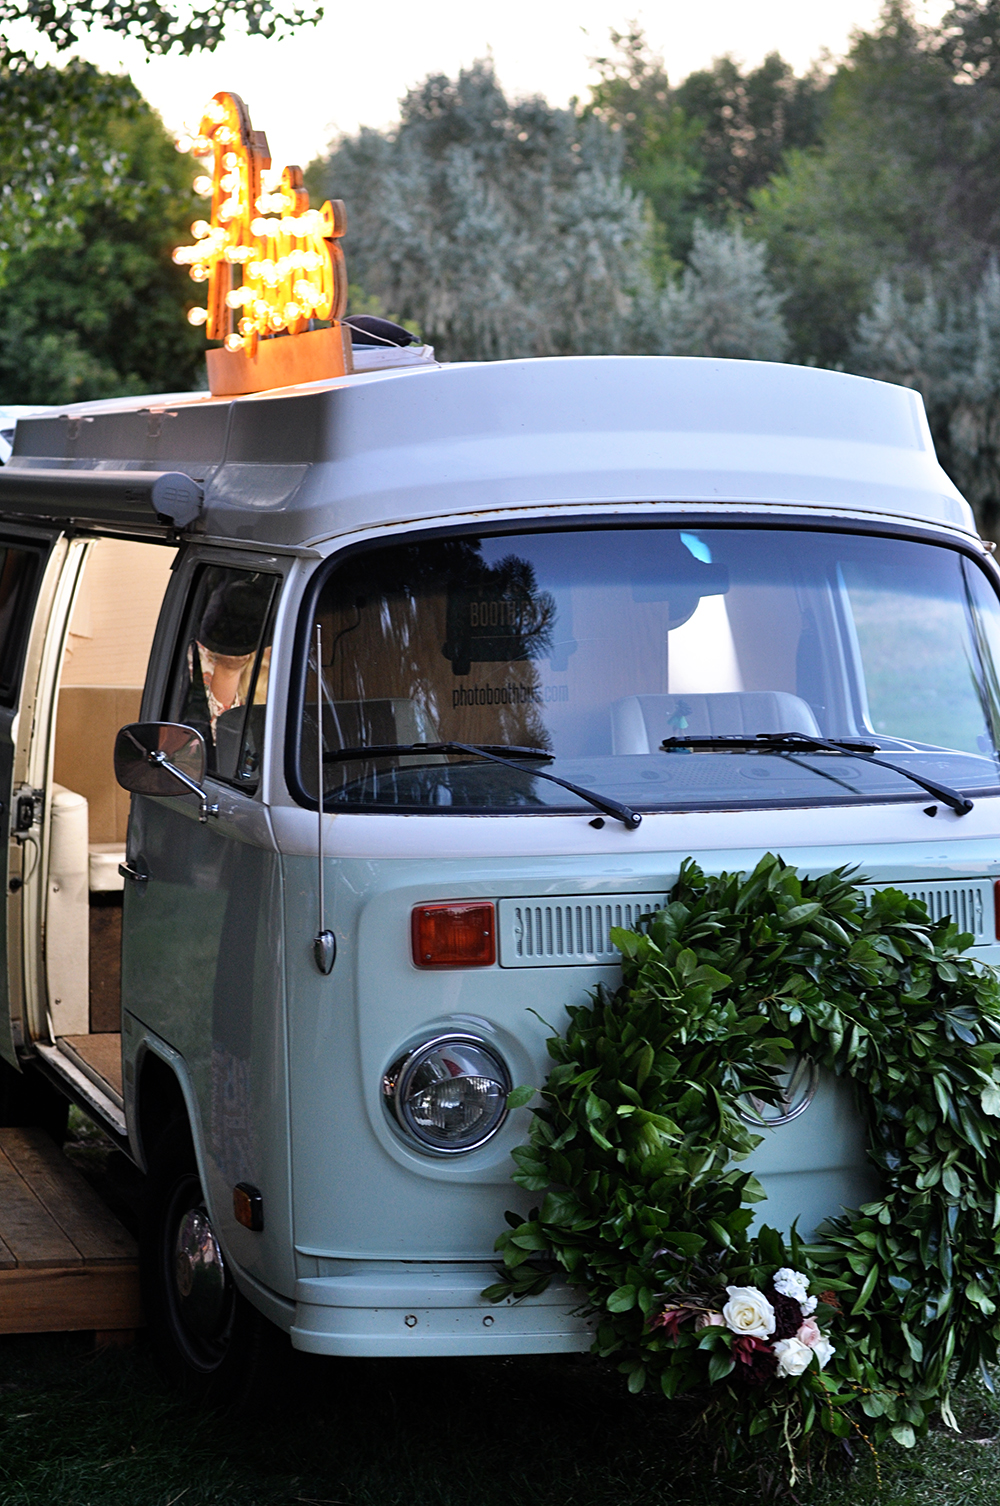 VW bus photo booth!